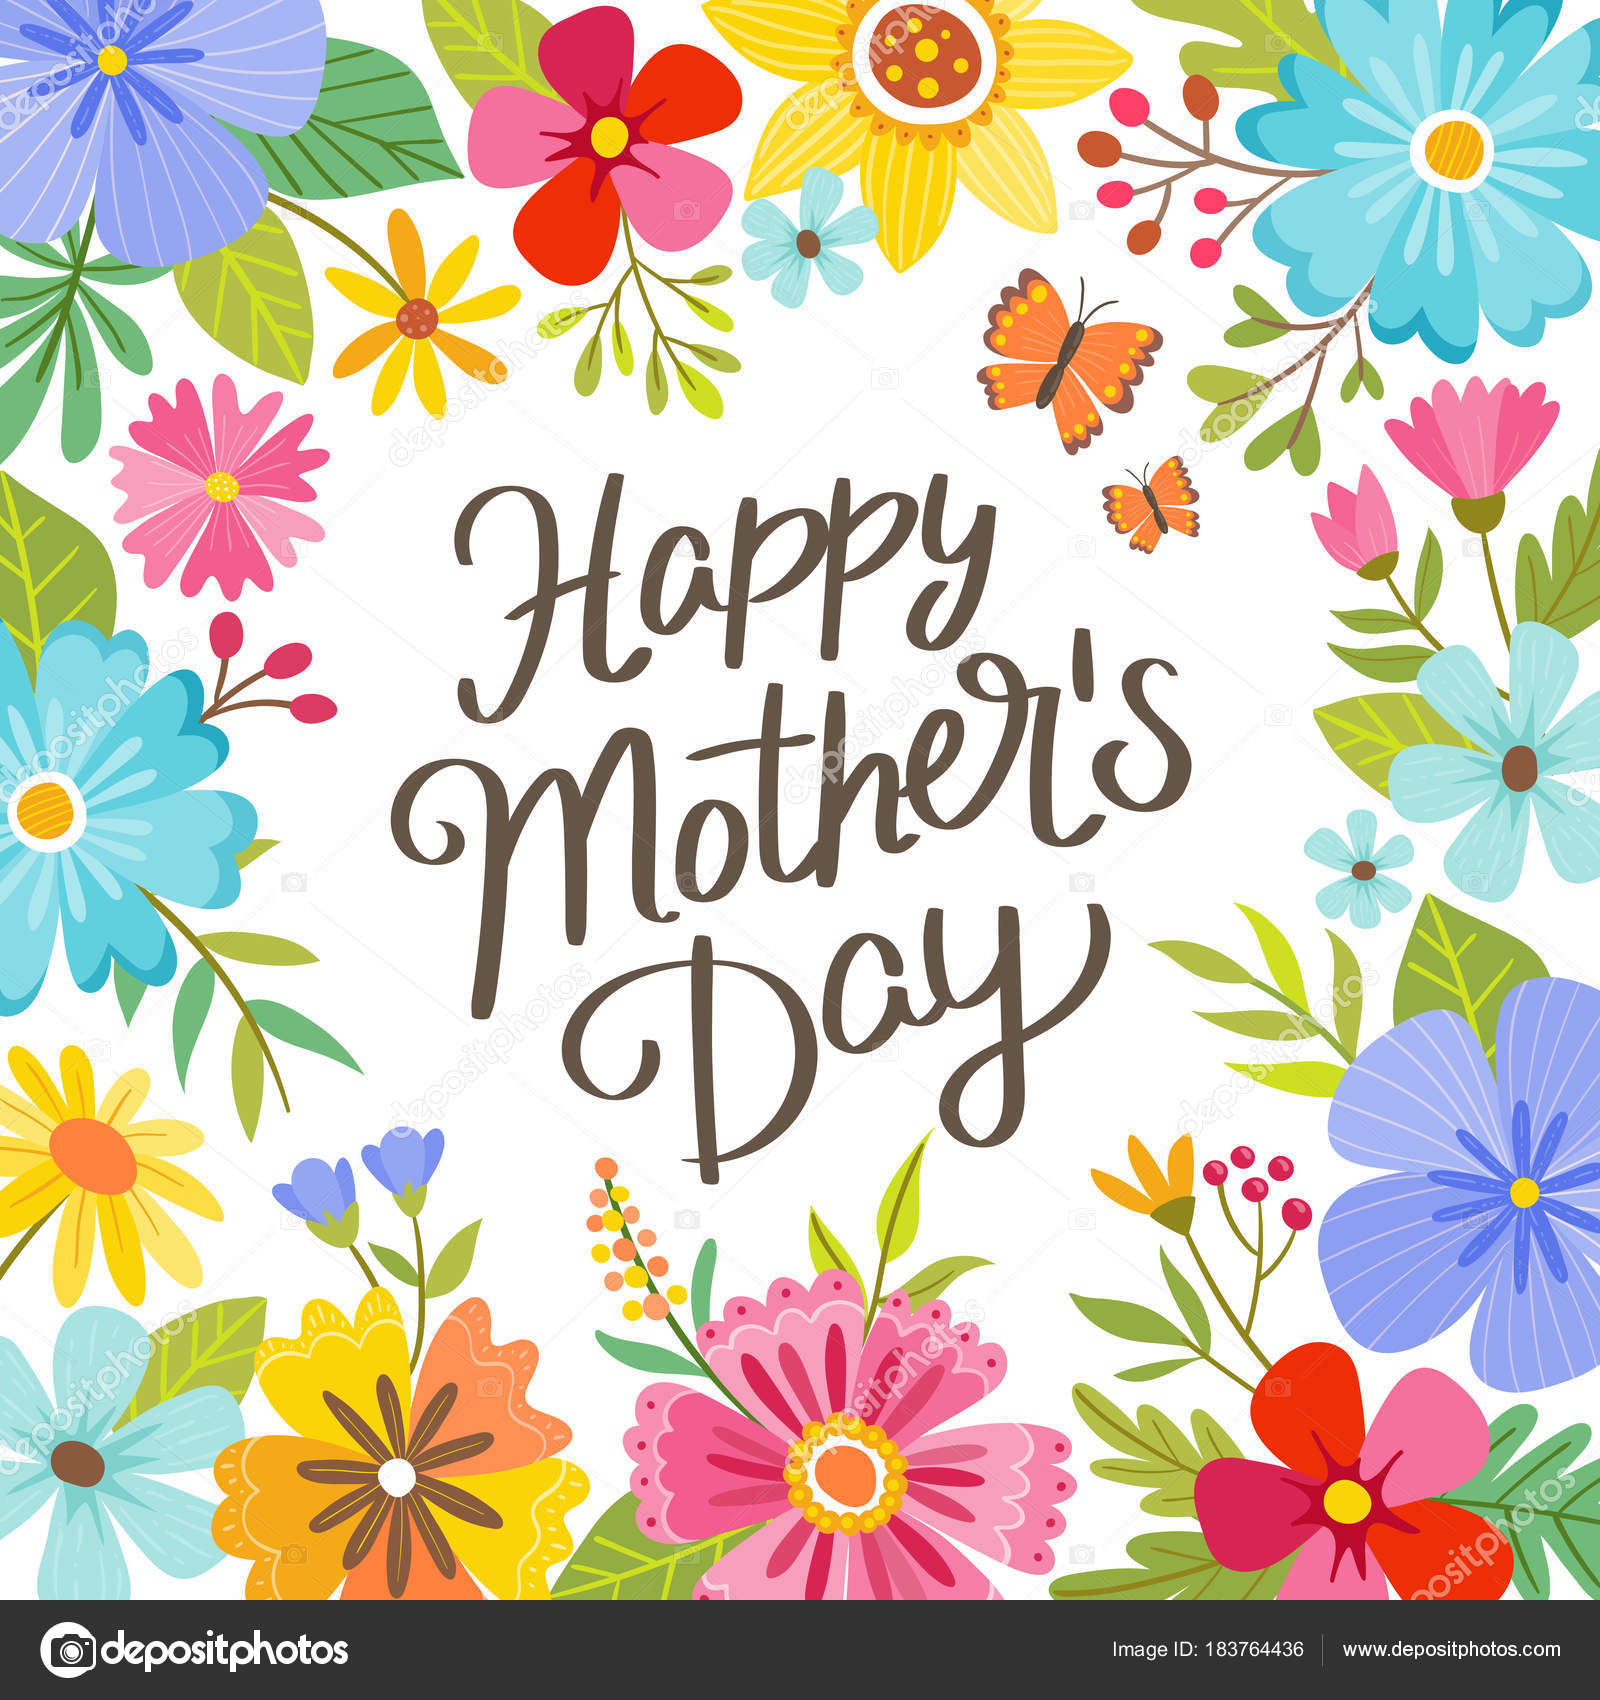 cute mother s day greeting card stock vector insemar 183764436